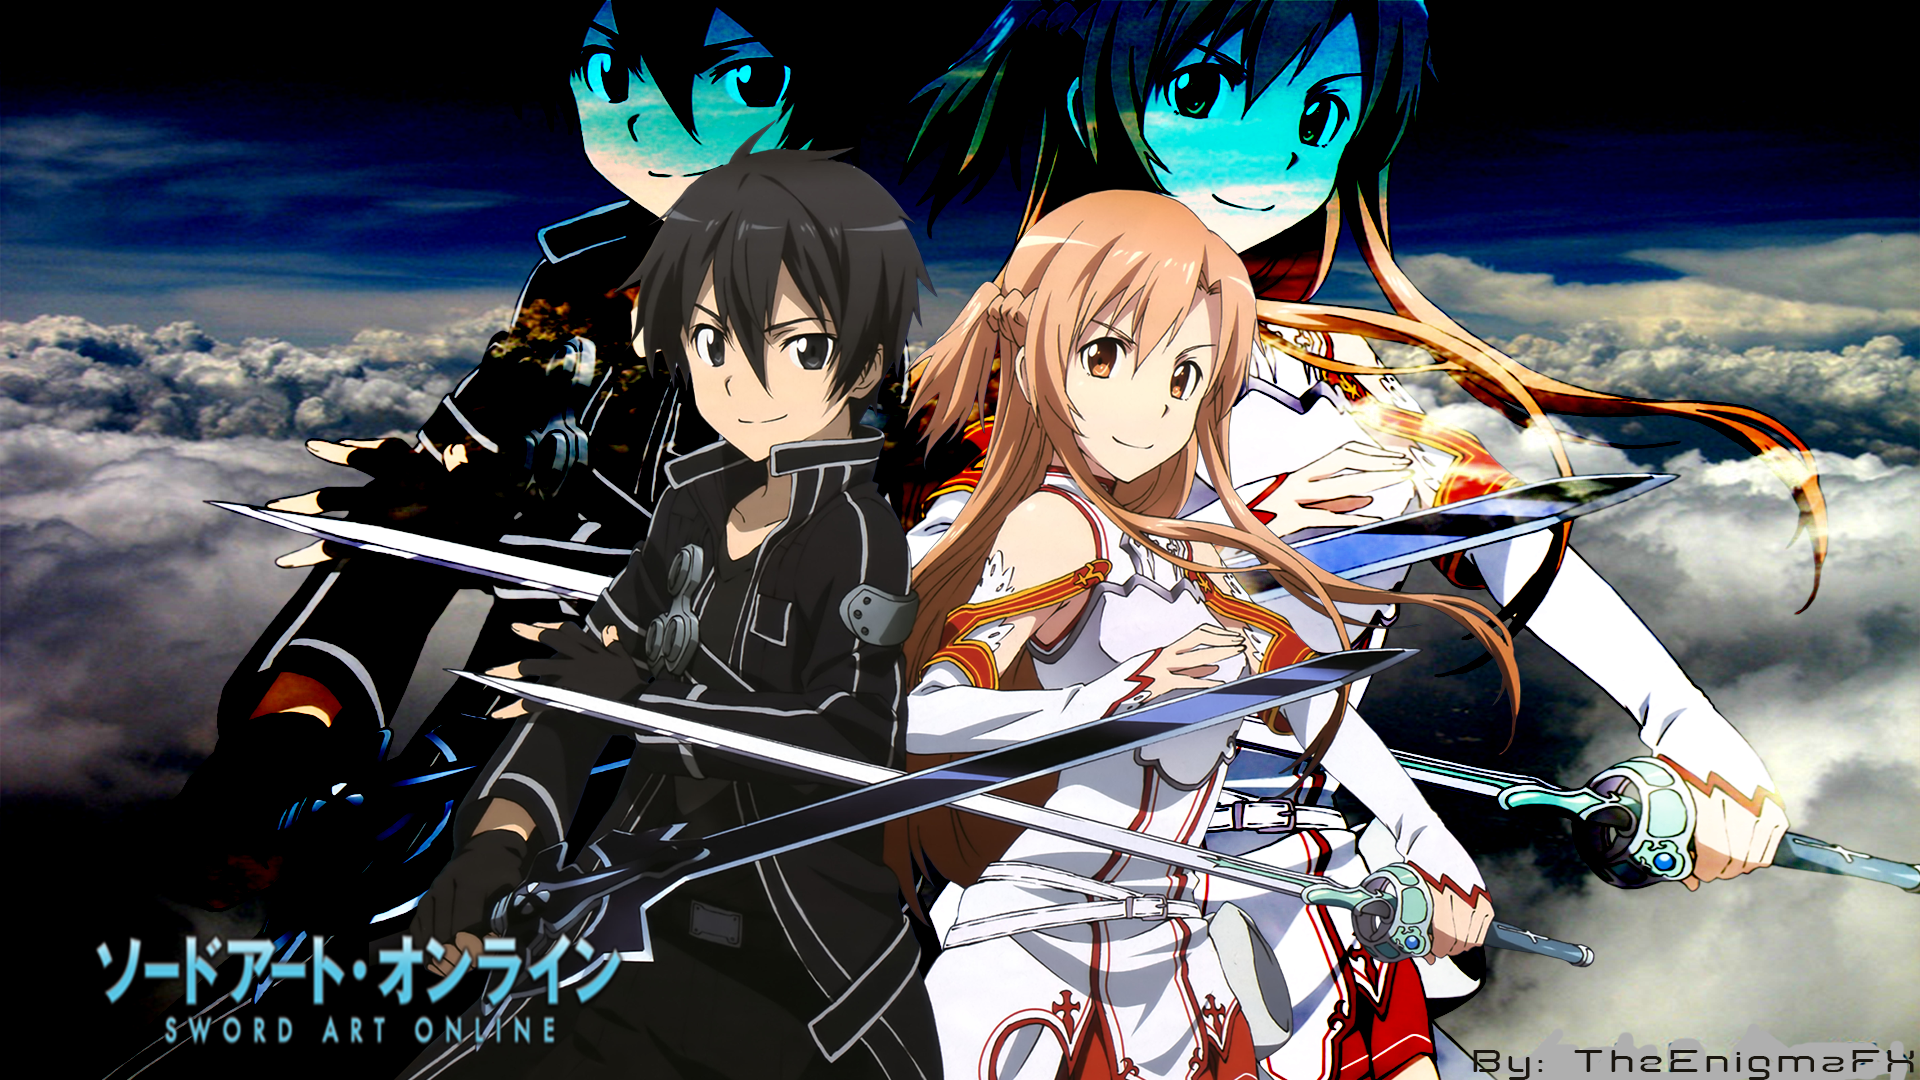 Bandai Namco has officially confirmed that Sword Art Online RE Hollow 1920x1080